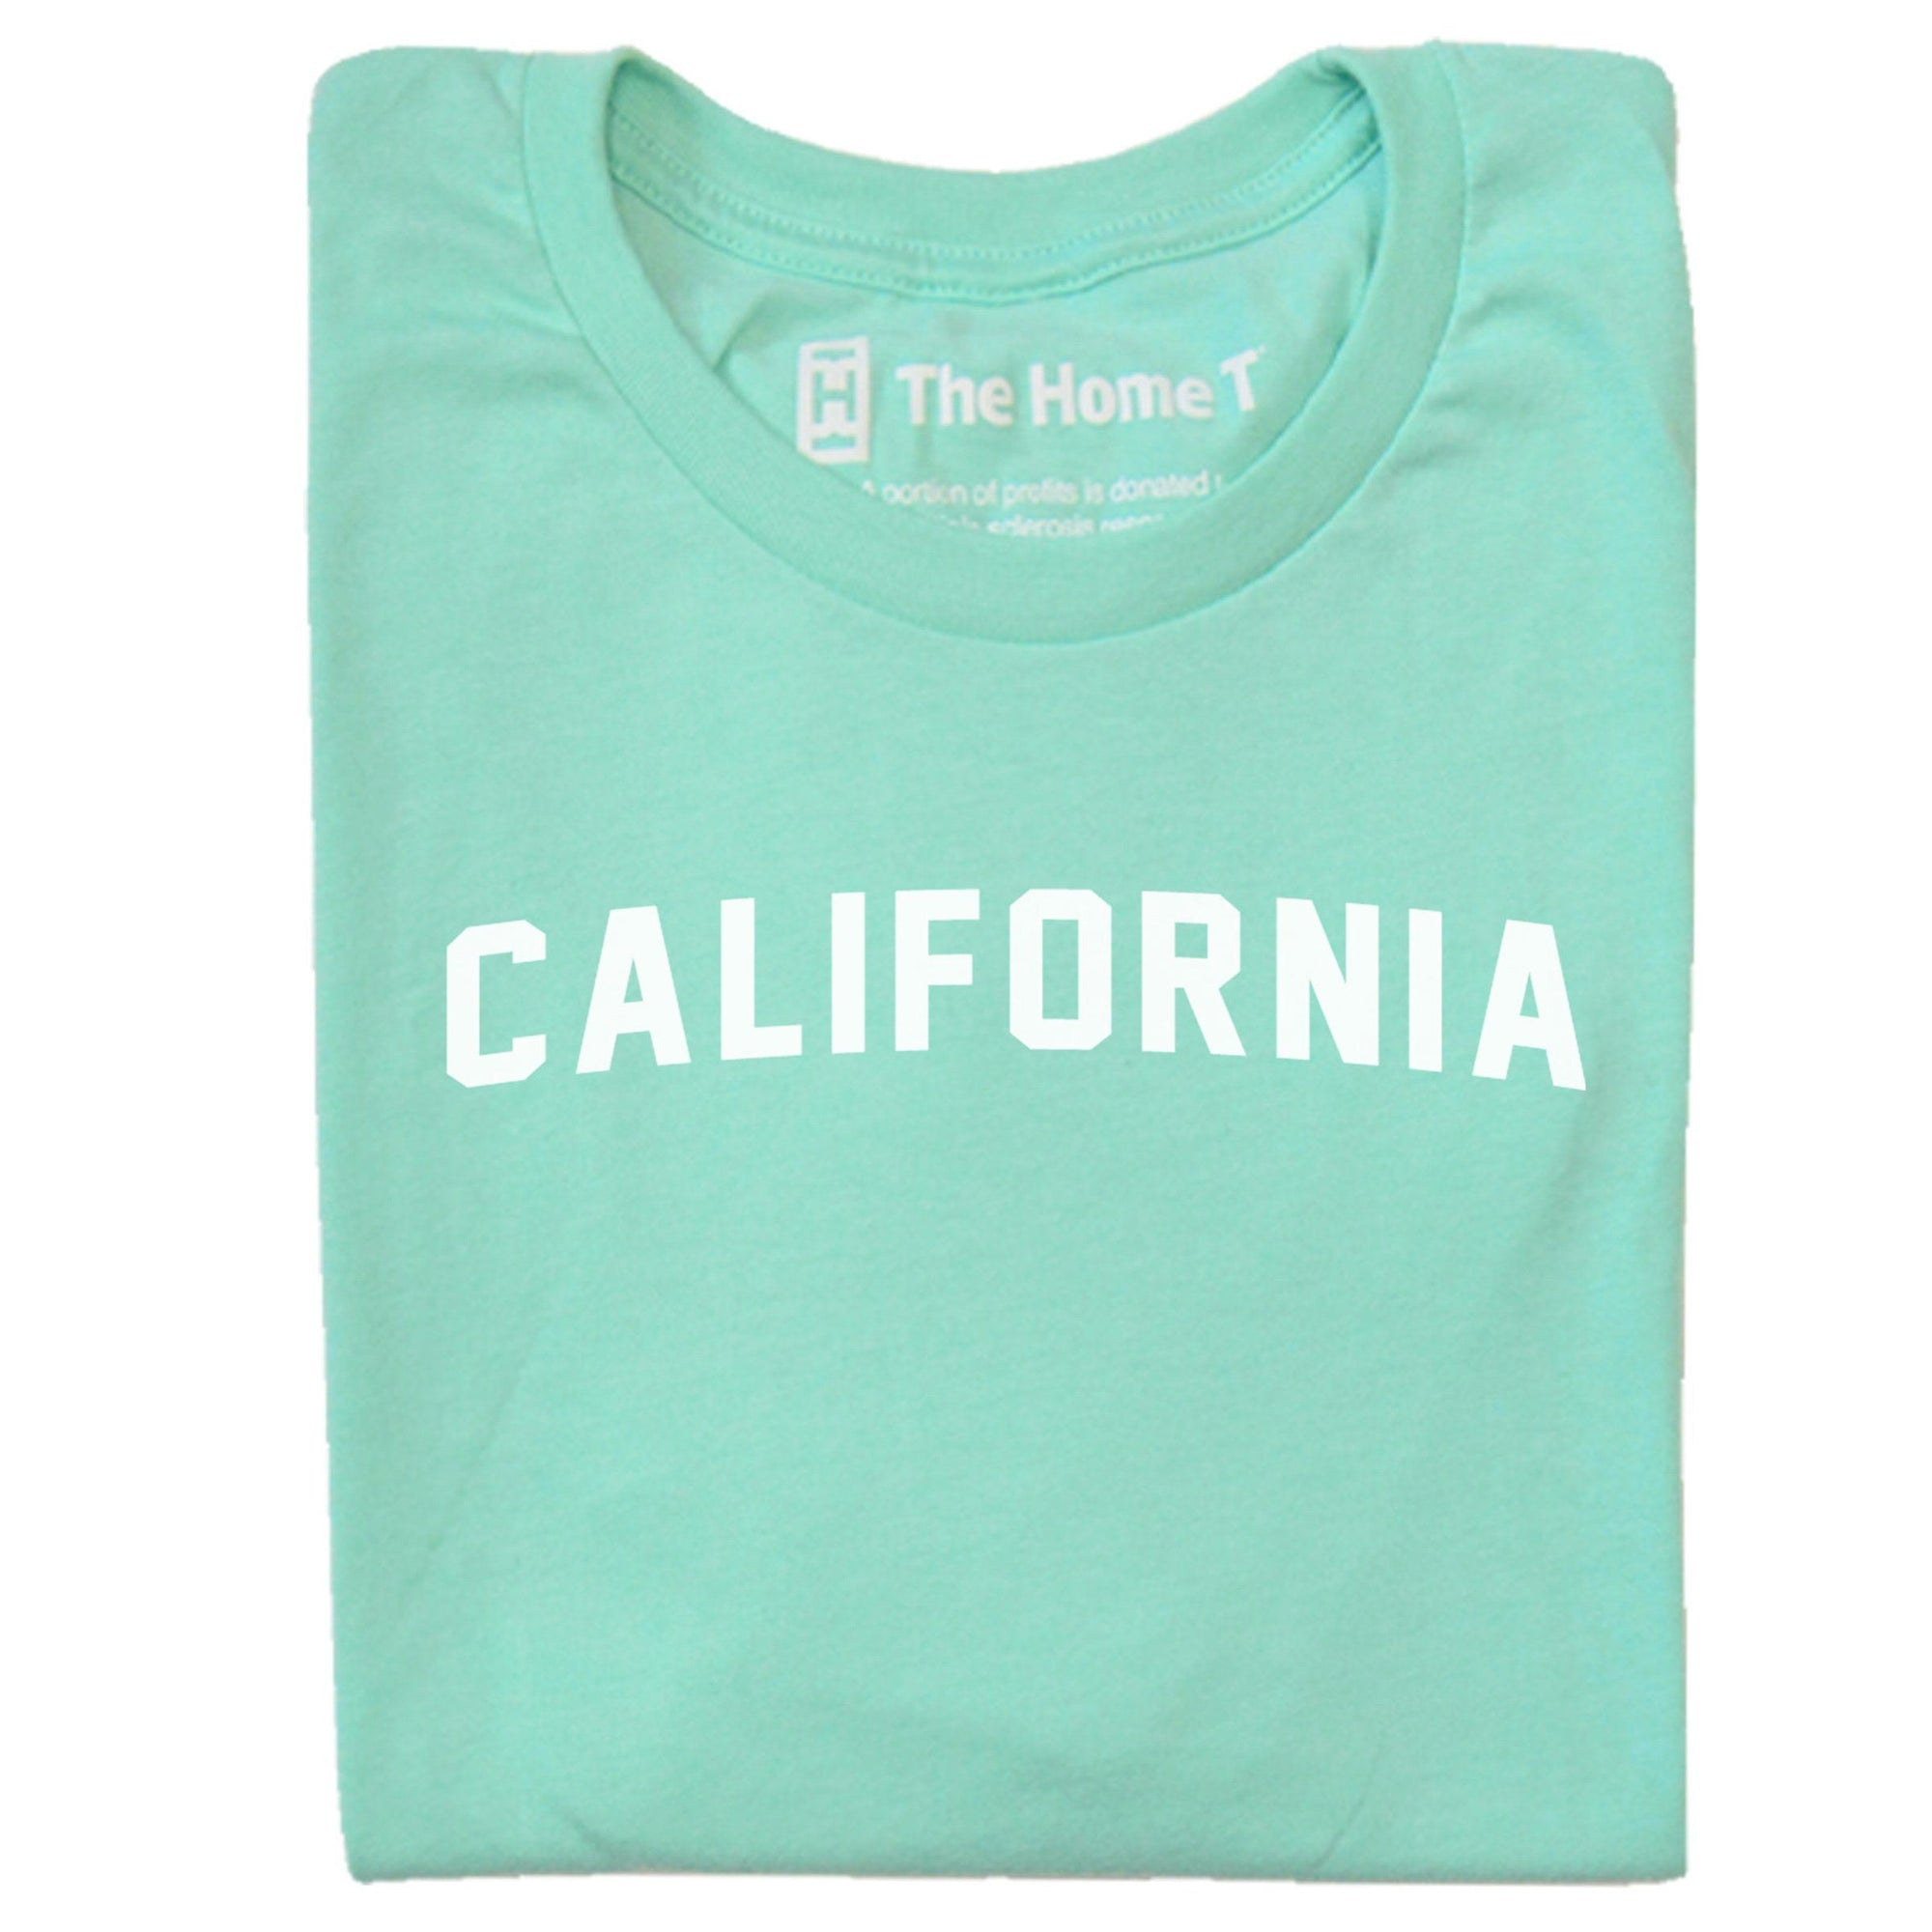 California Arched The Home T XS Mint